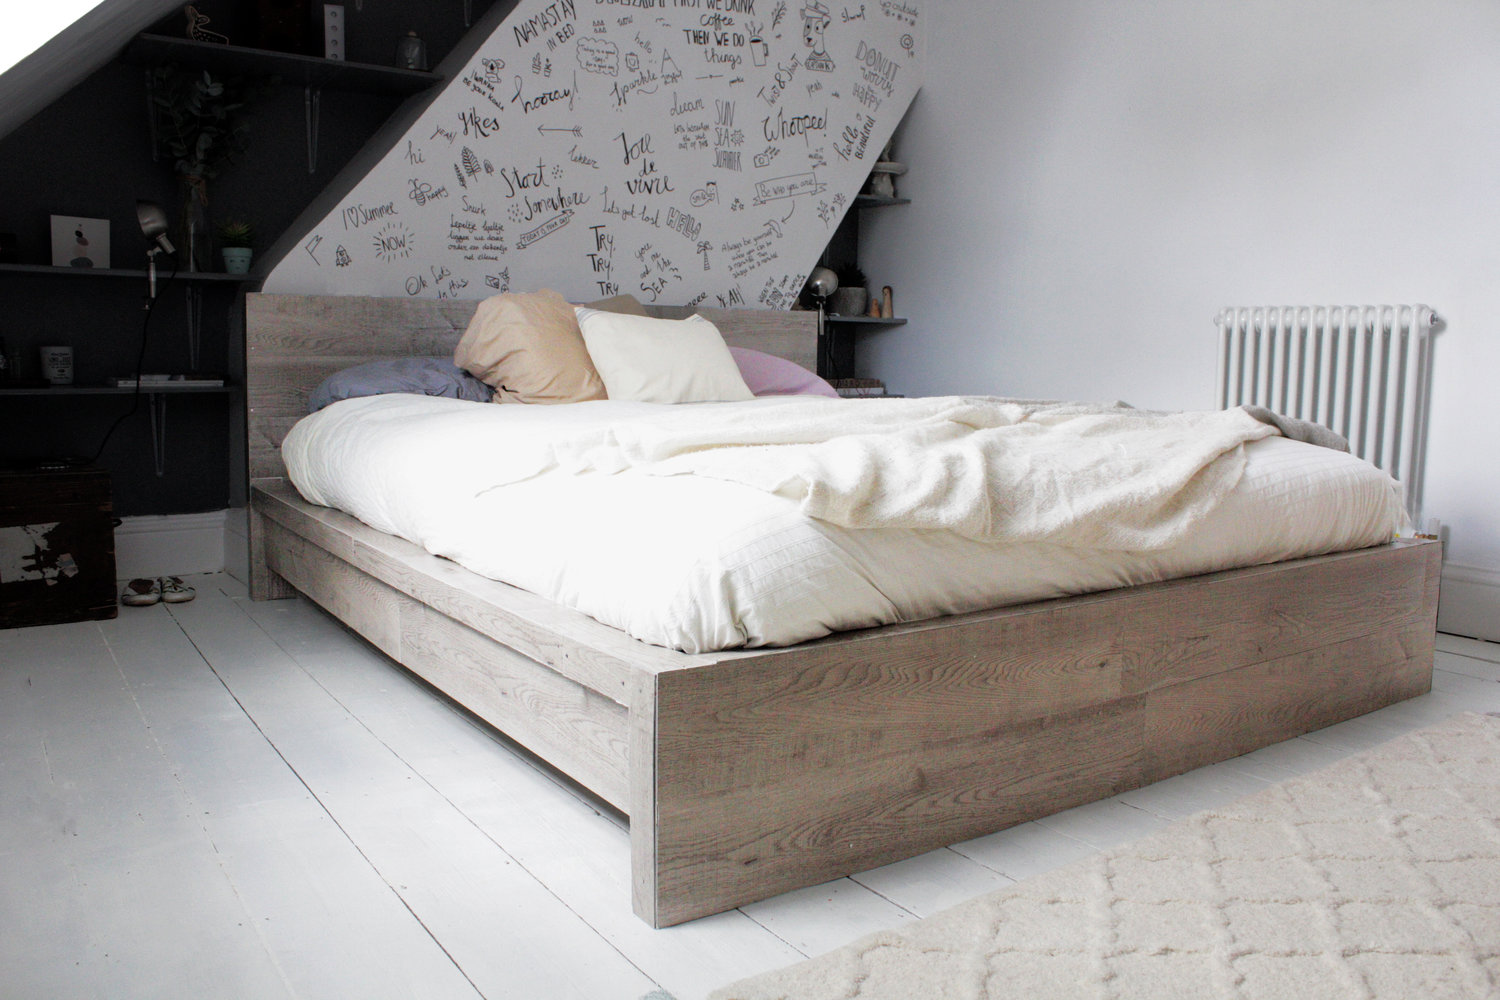 ikea hack rustic look for a malm bedframe